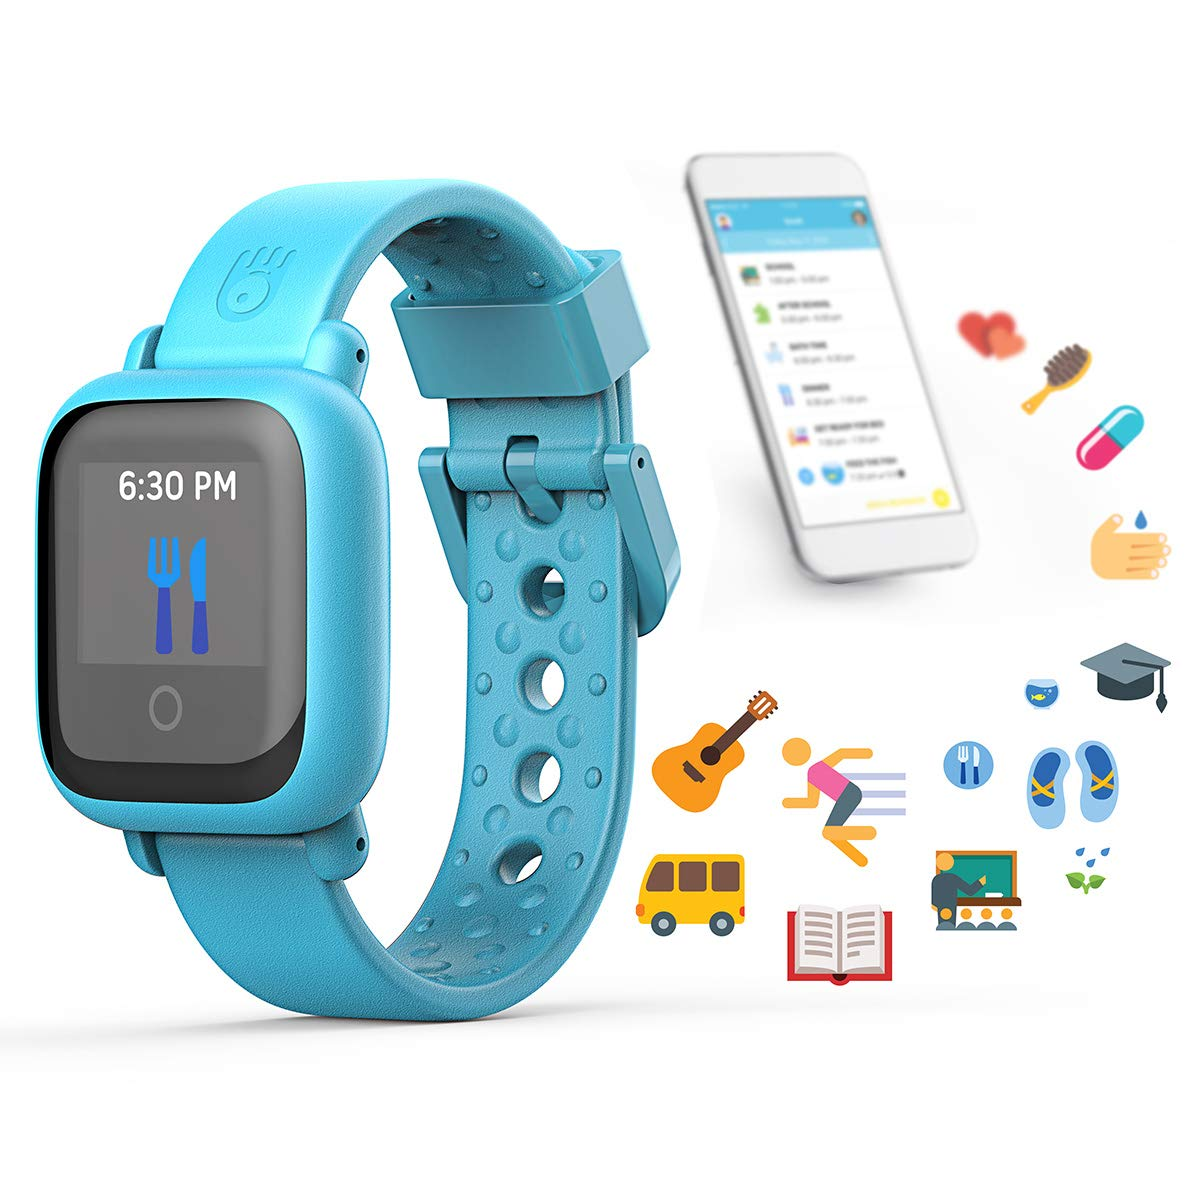 New! Octopus Watch v2 Motion Edition Teaches Kids Good Habits & Time - Encourages Active Play - The First Icon-Based Kids Smartwatch and Fitness Tracker (Blue) by Octopus by JOY (Image #3)